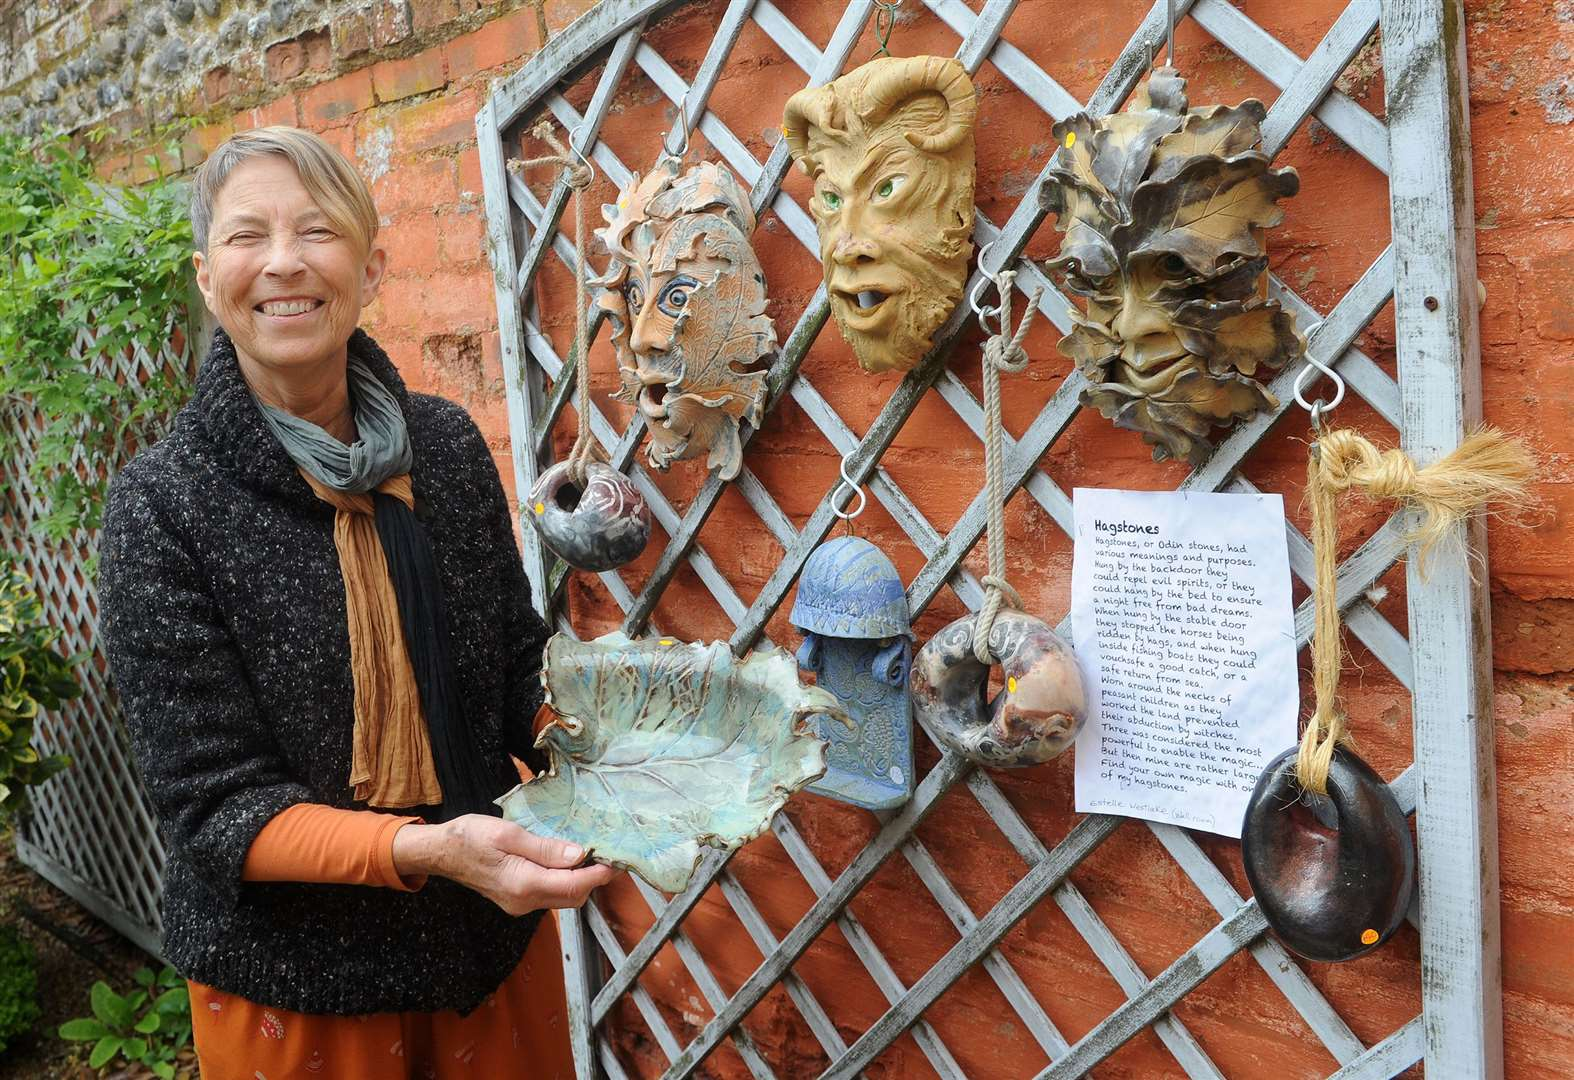 PICTURES: Exhibition showcases artists and crafts makers in Lavenham